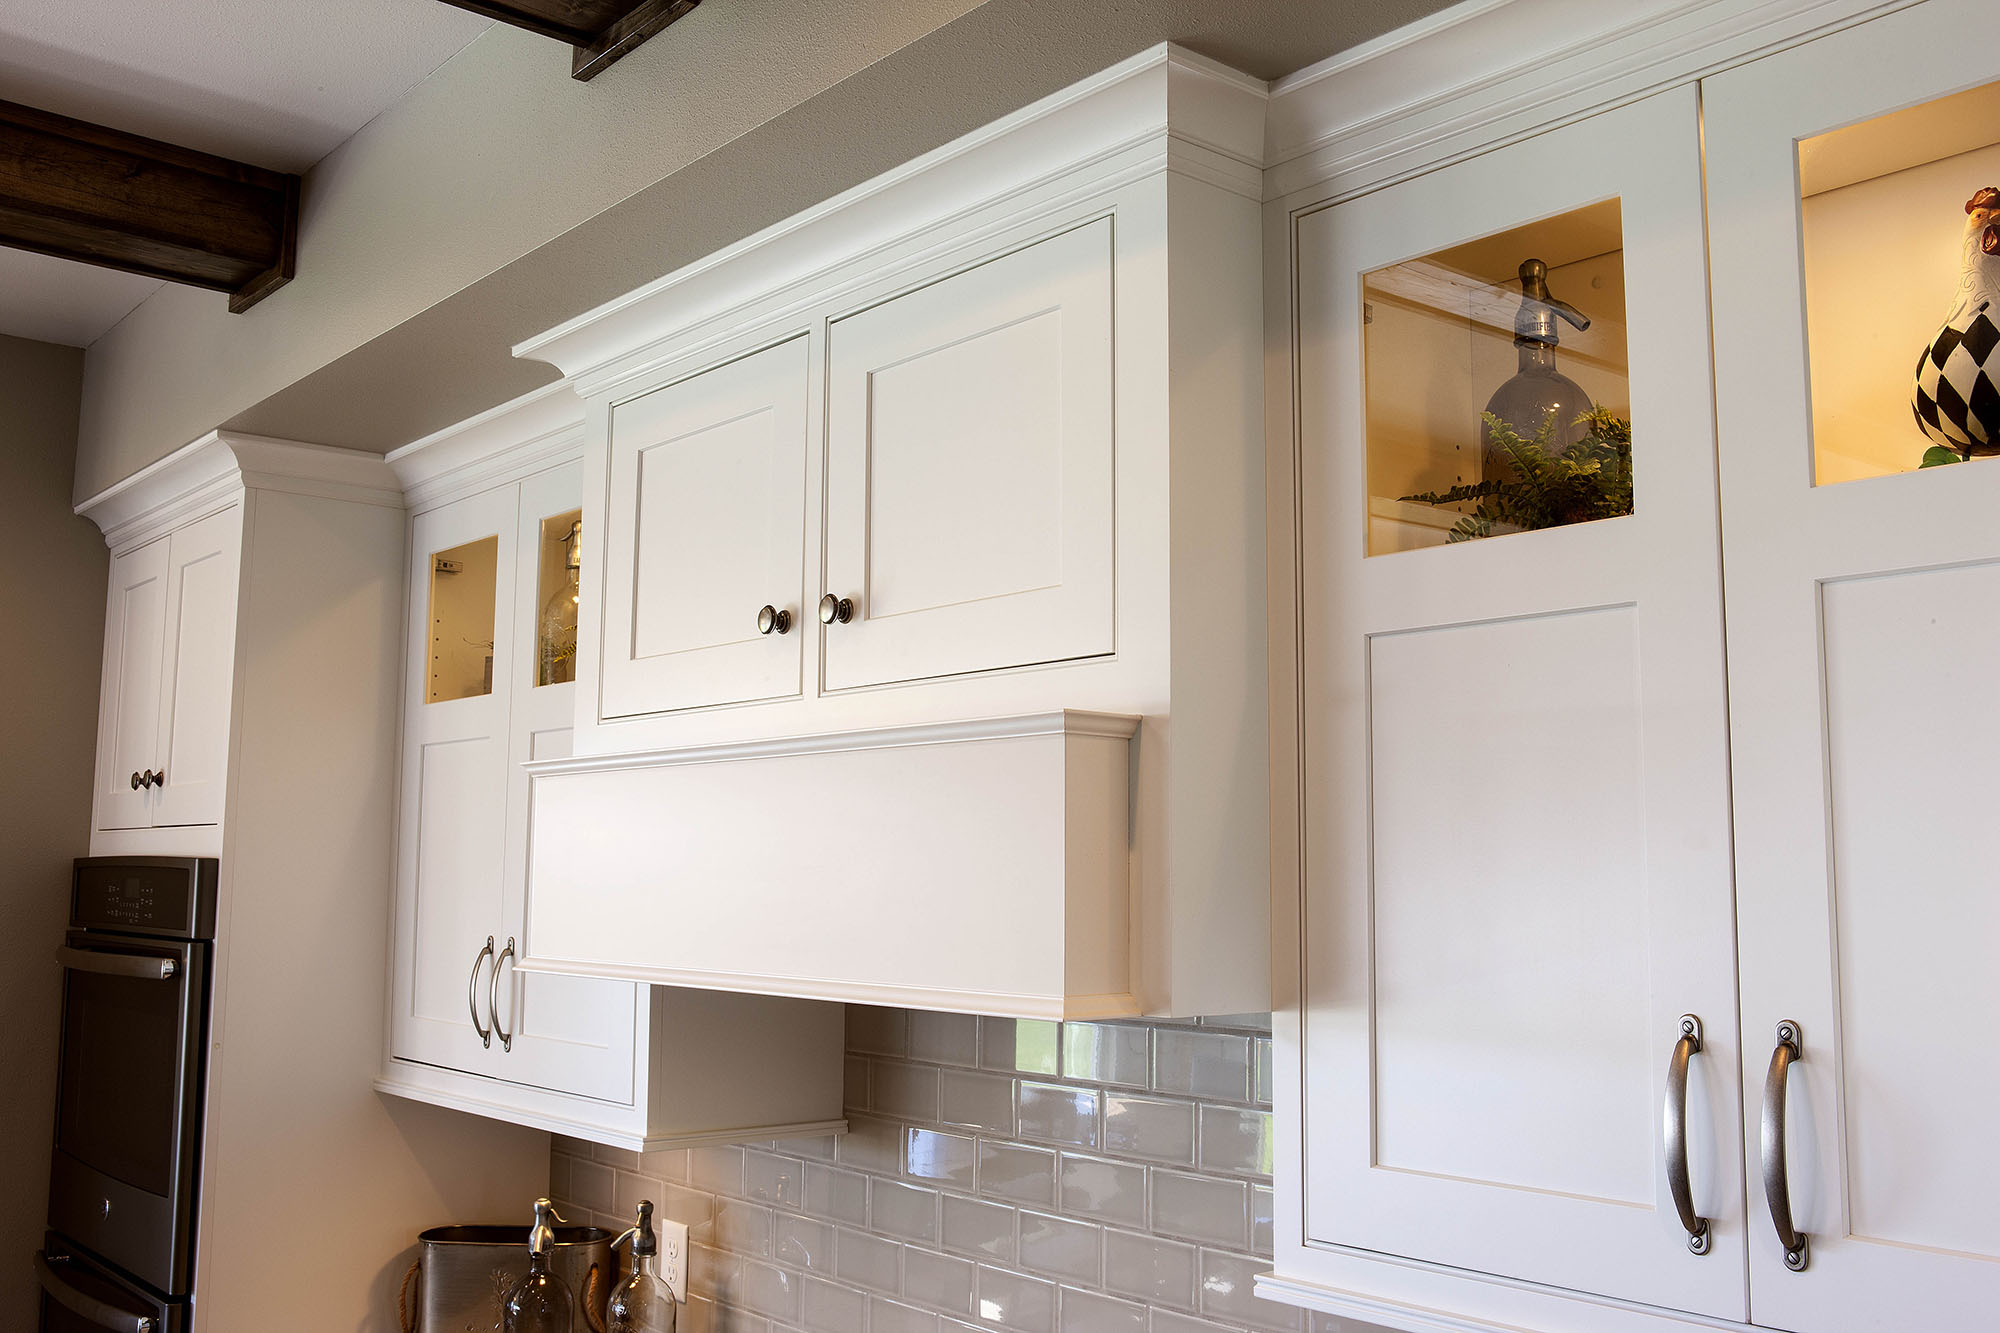 Painted kitchen ranged hood in White by Showplace Cabinetry